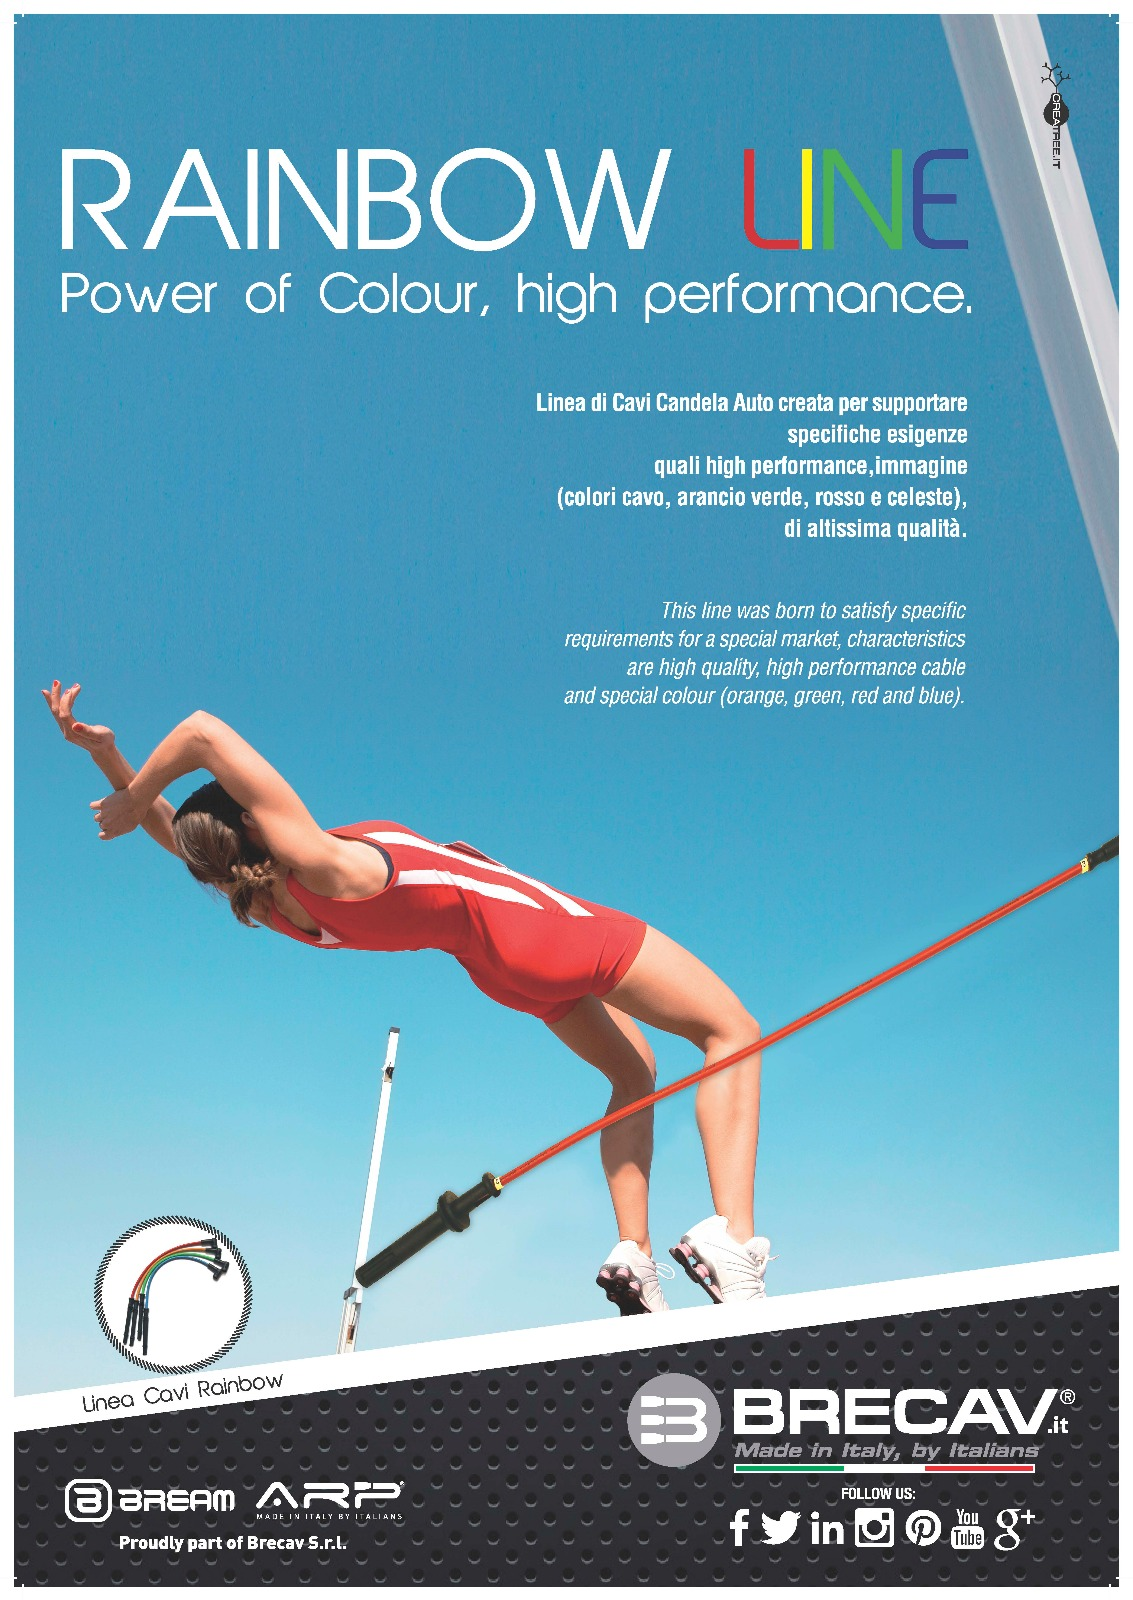 Rainbow LINE – Power of Colour, high performance